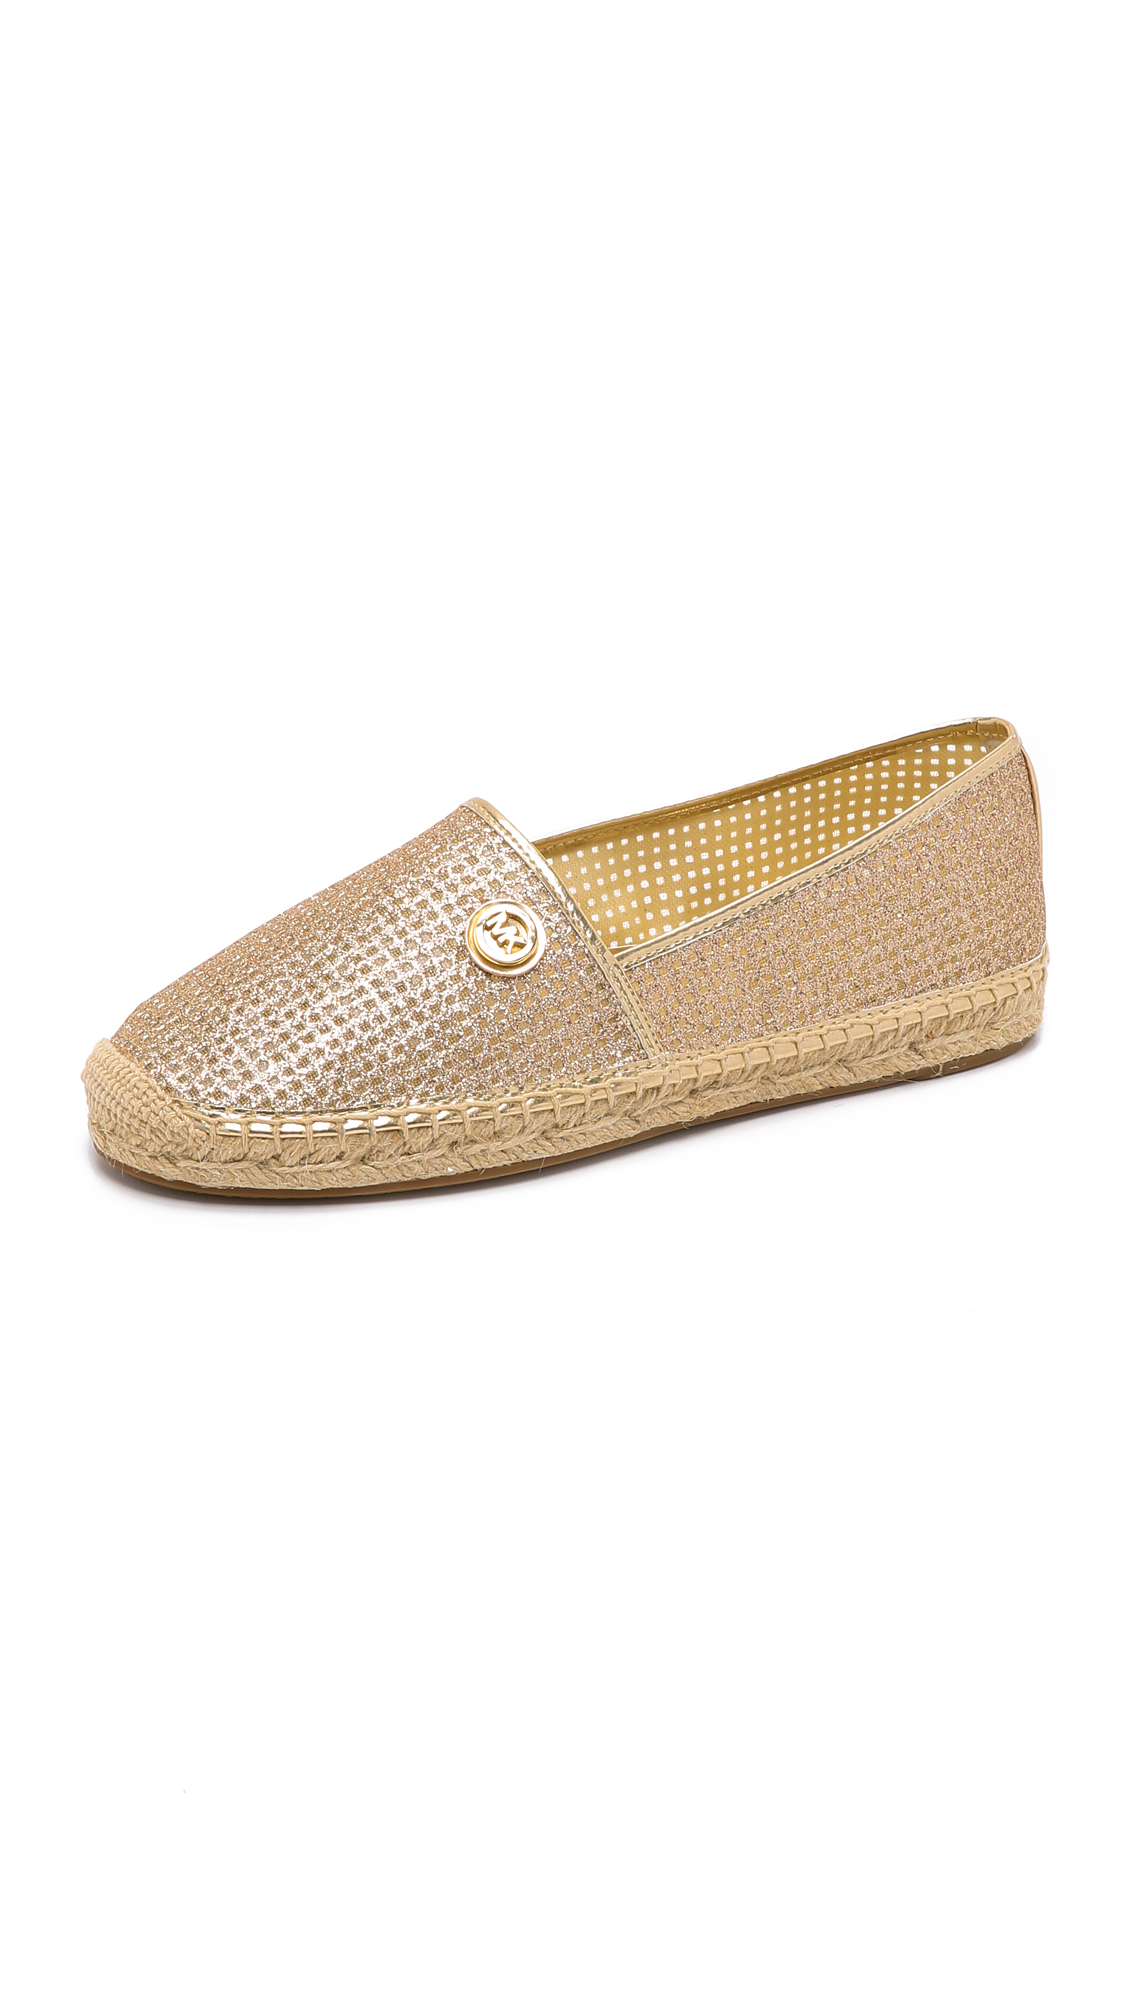 Kendrick Slip Ons In Gold Pixie Fine Perforated Leather, Pale Gold